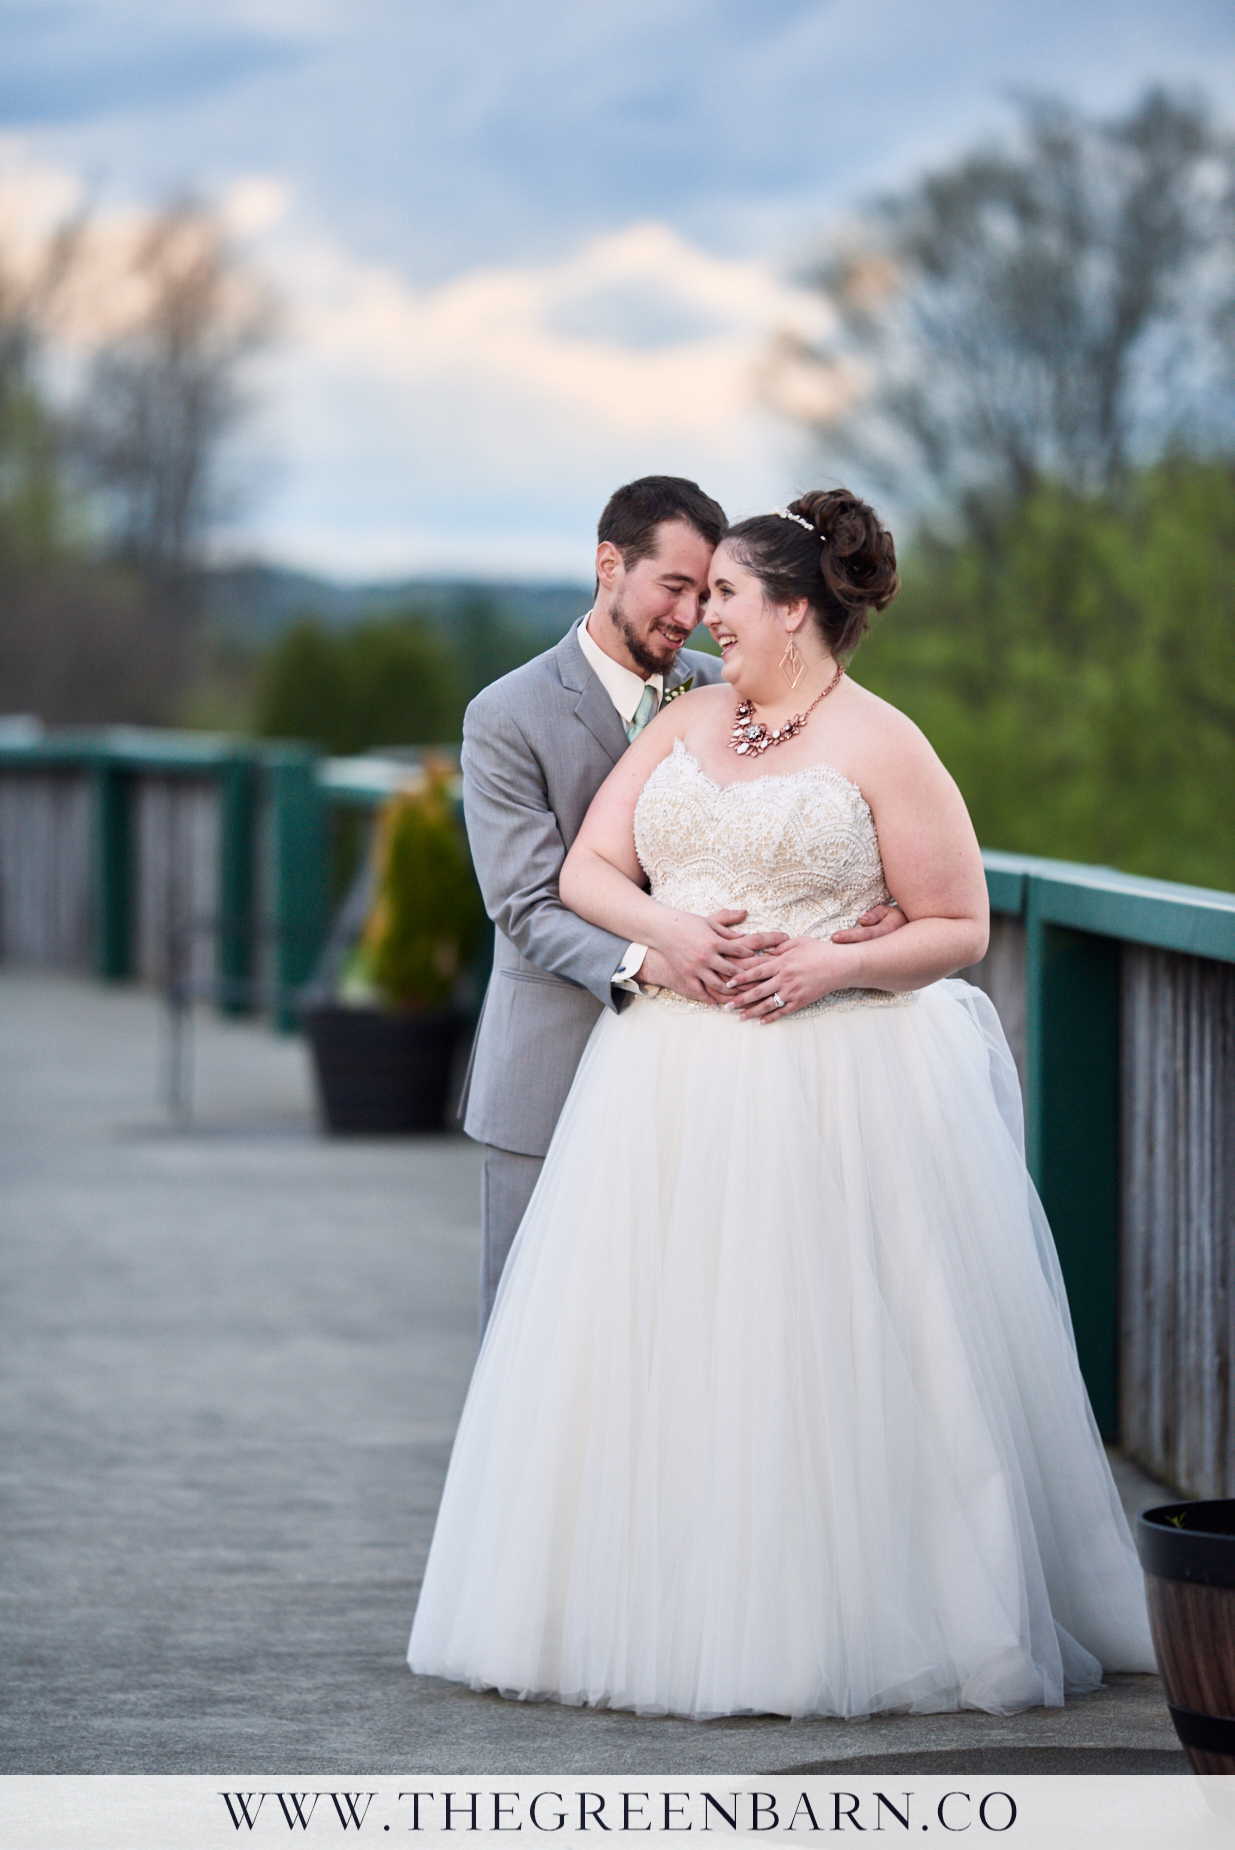 Bride and Groom Sunset Photo at Catamount Country Club near Burlington, VT